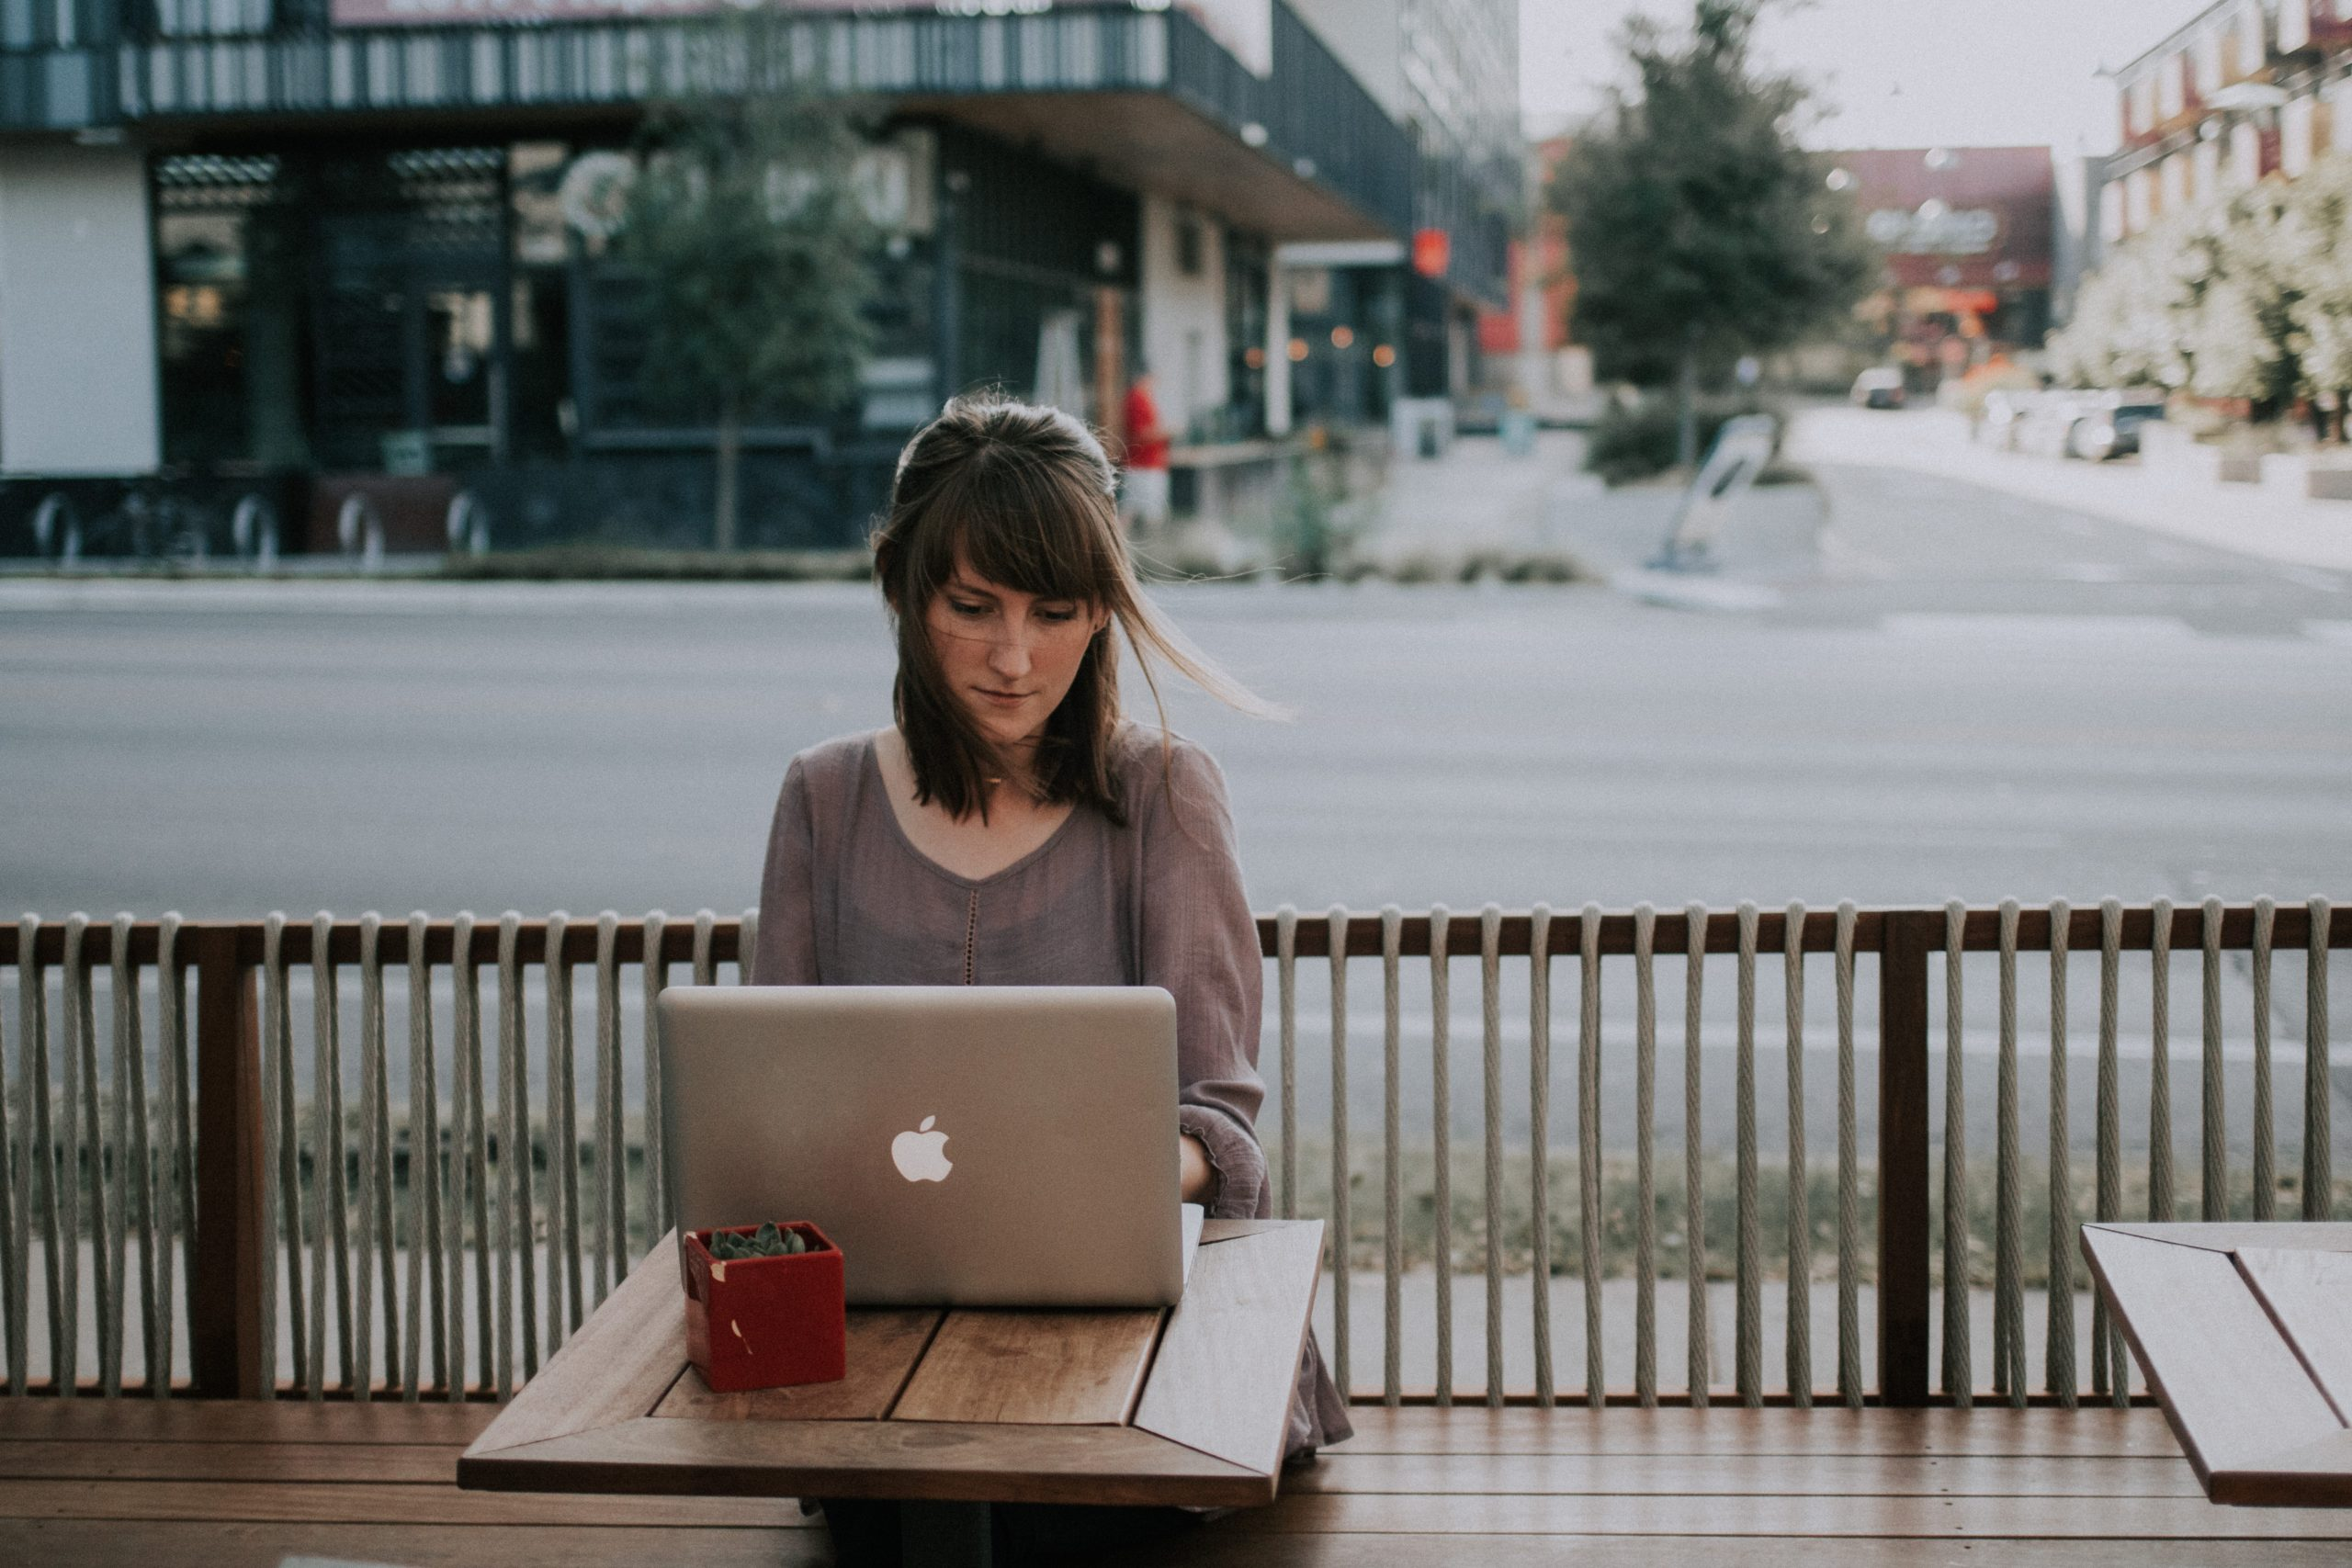 Questions to Ask Before Hiring Freelance Developers